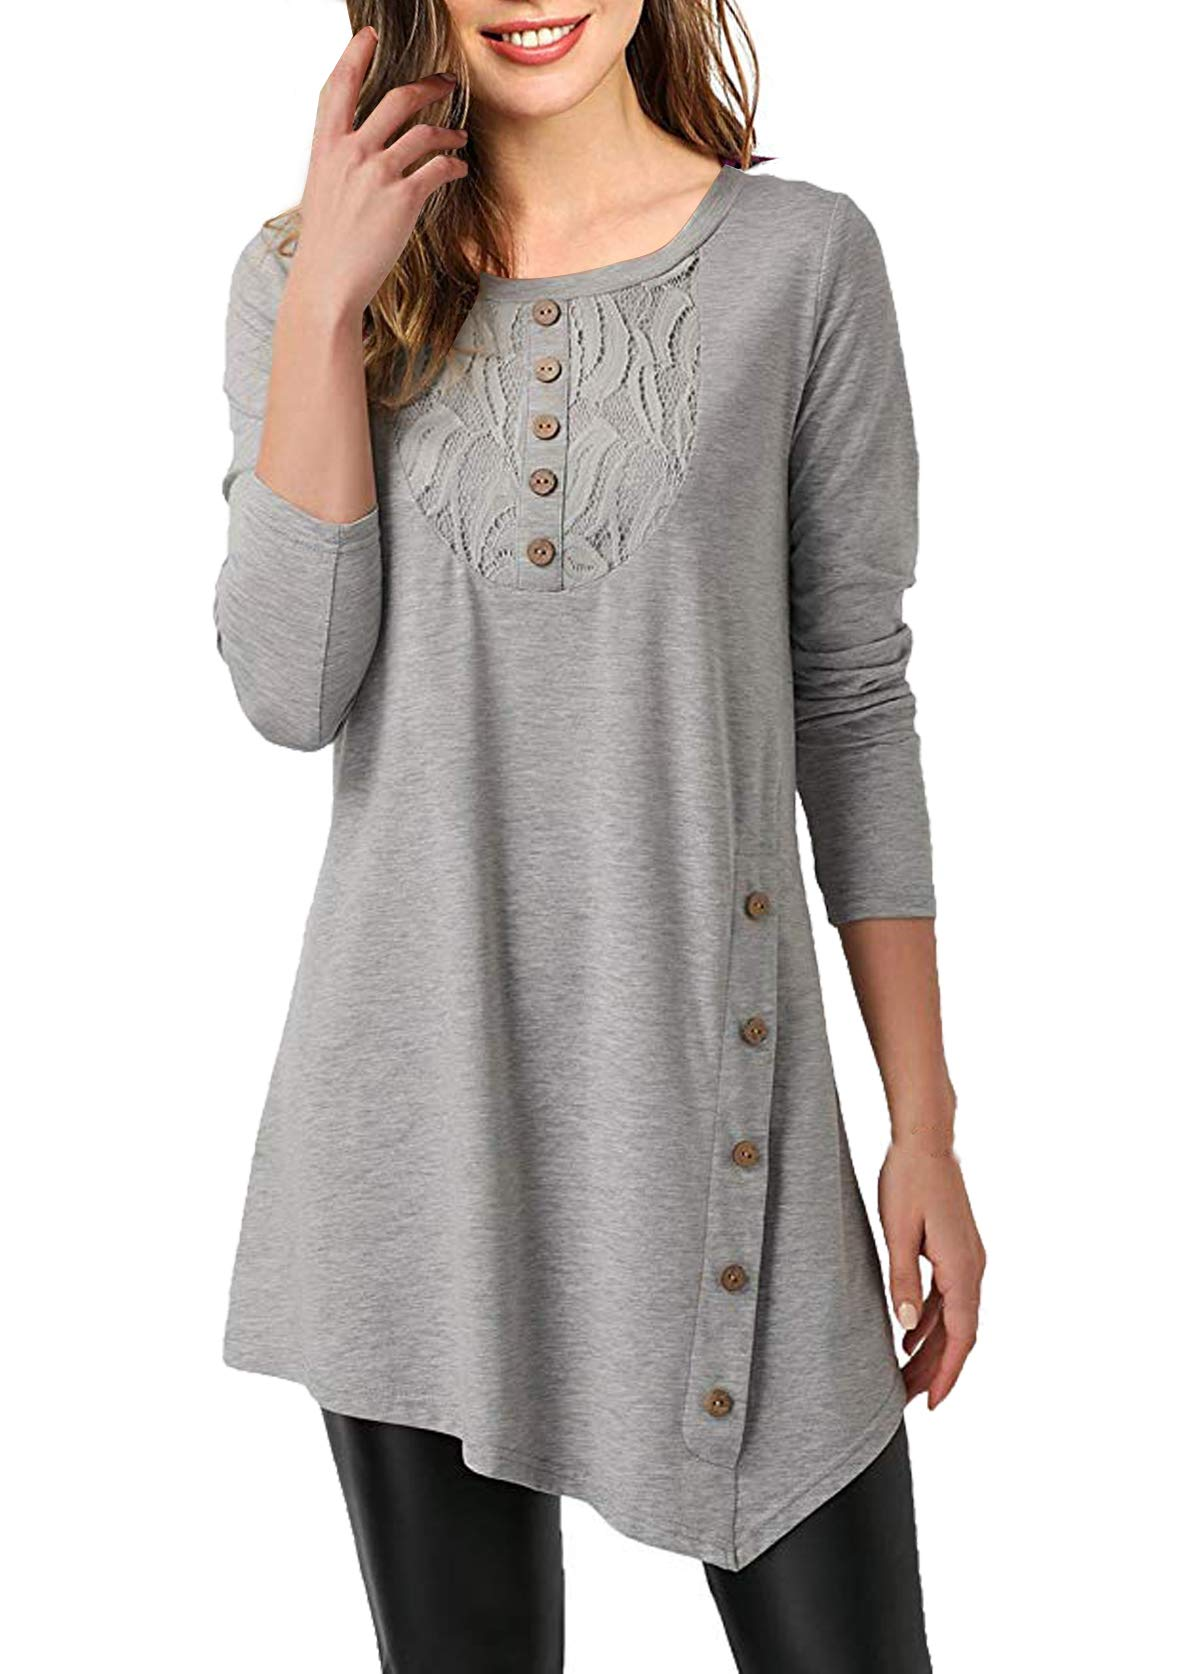 Mystry Zone Women's Casual Long Sleeve Henley Shirt Button Tunic Tops Blouse Gray X-Large